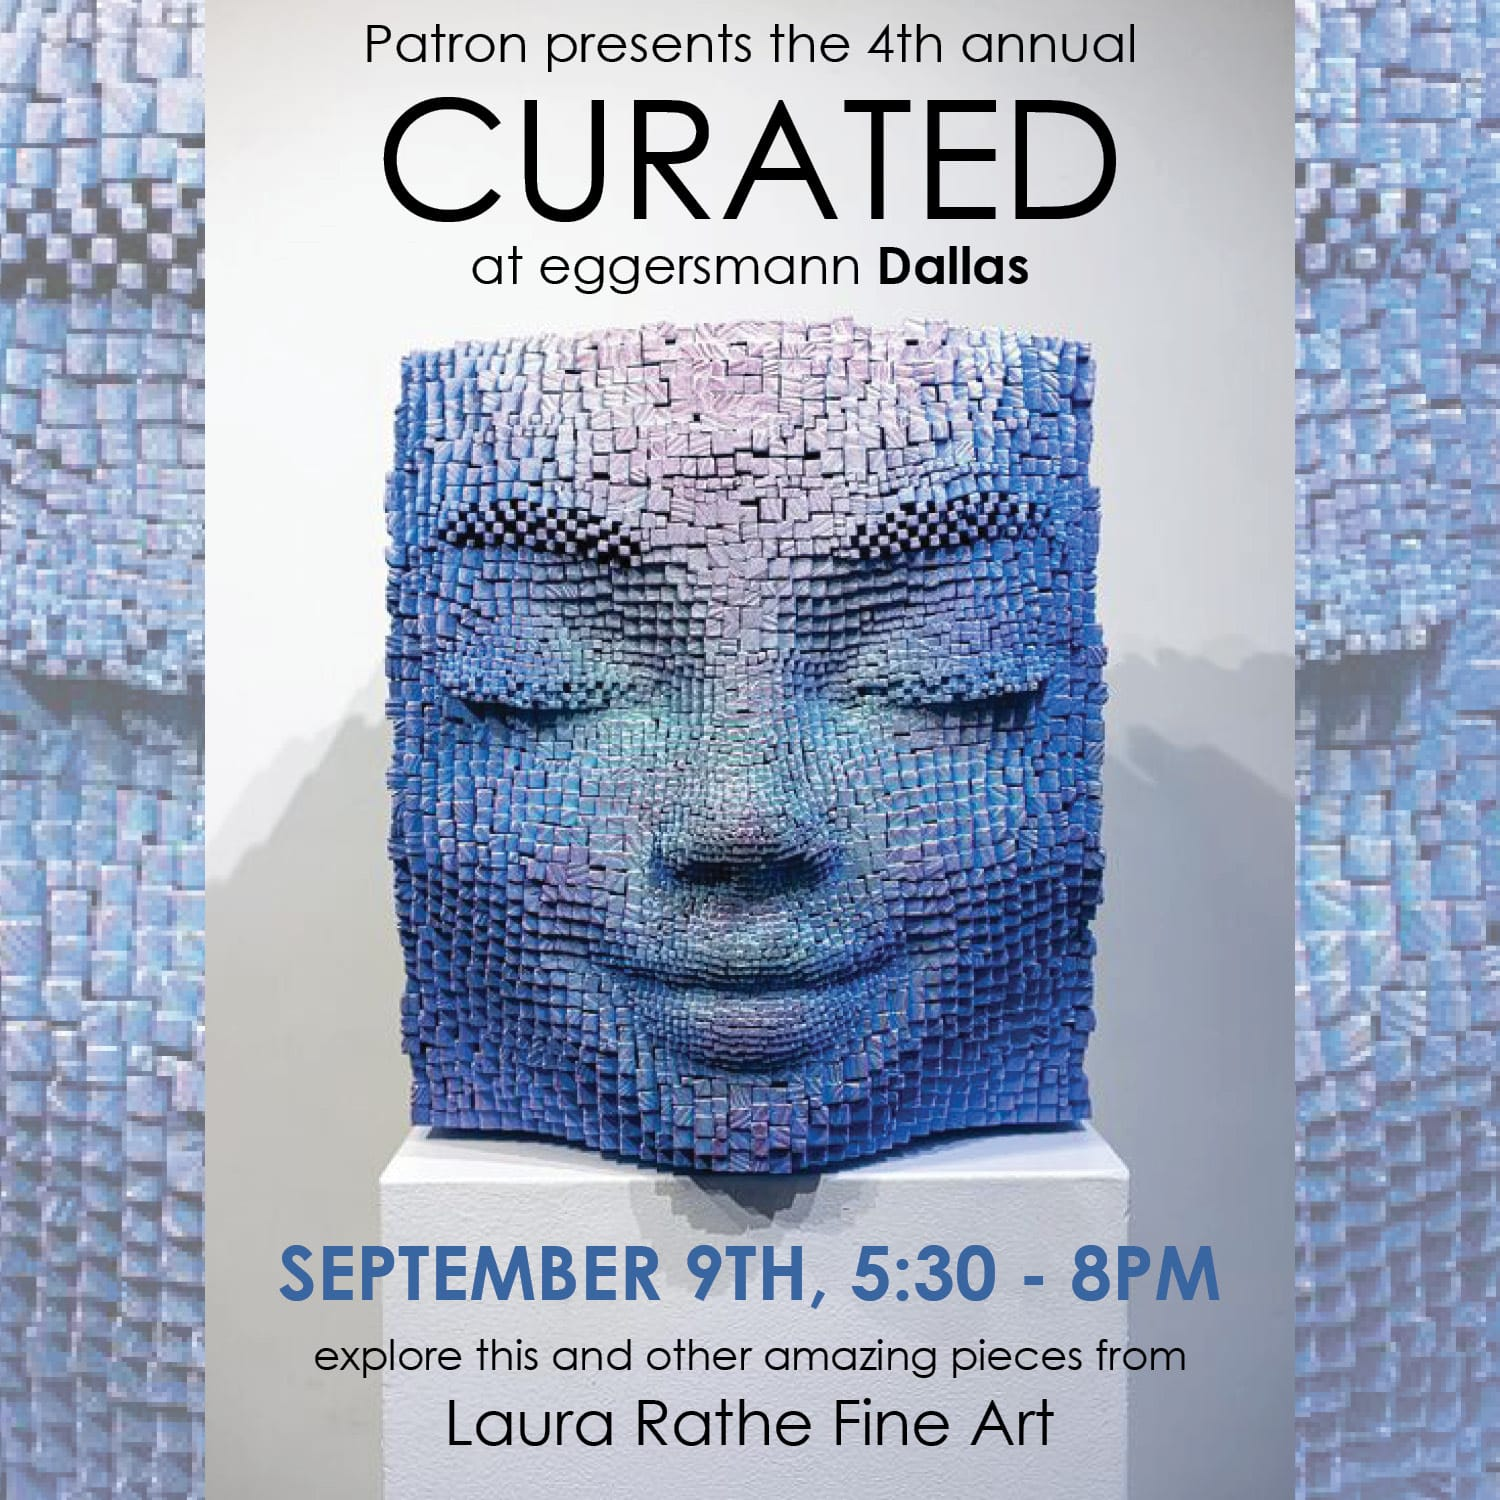 announcement for eggersmann dallas curated event in september 2021